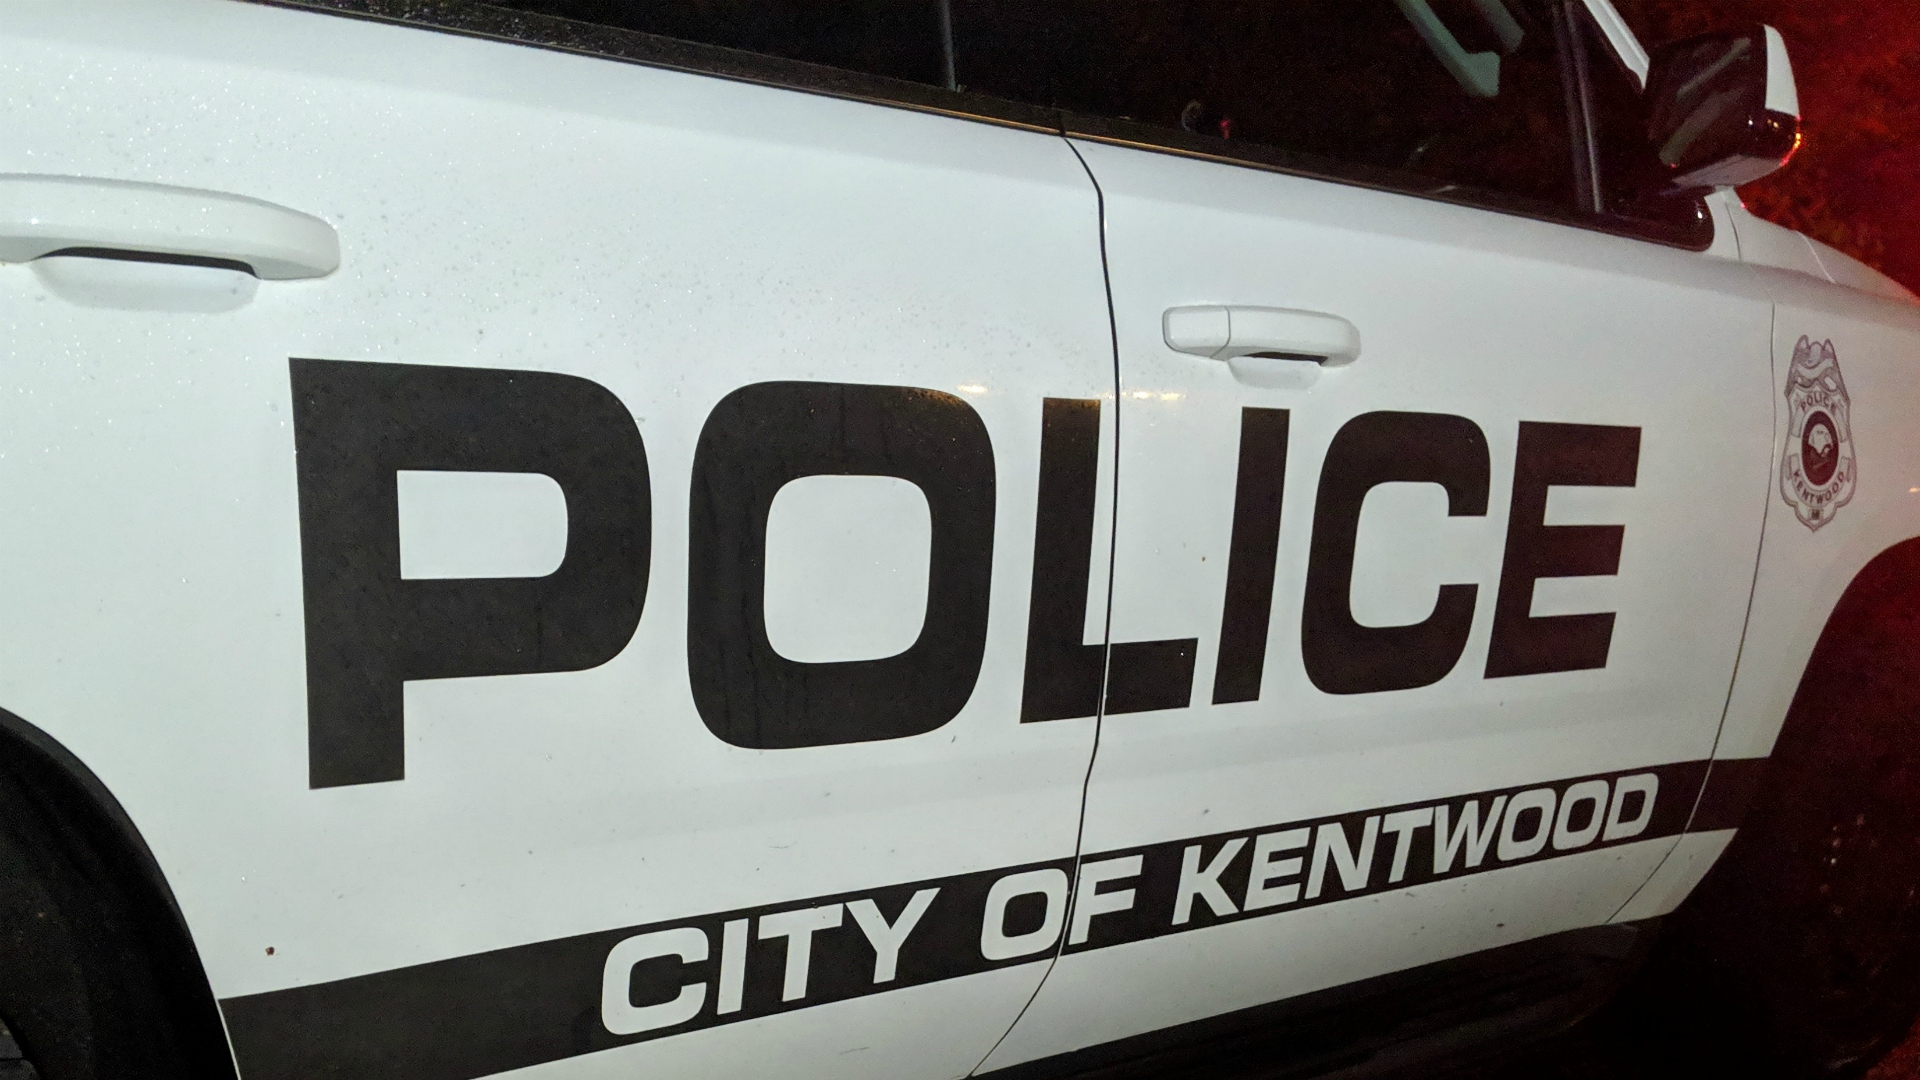 generic kentwood police department_1556681795189.jpg.jpg